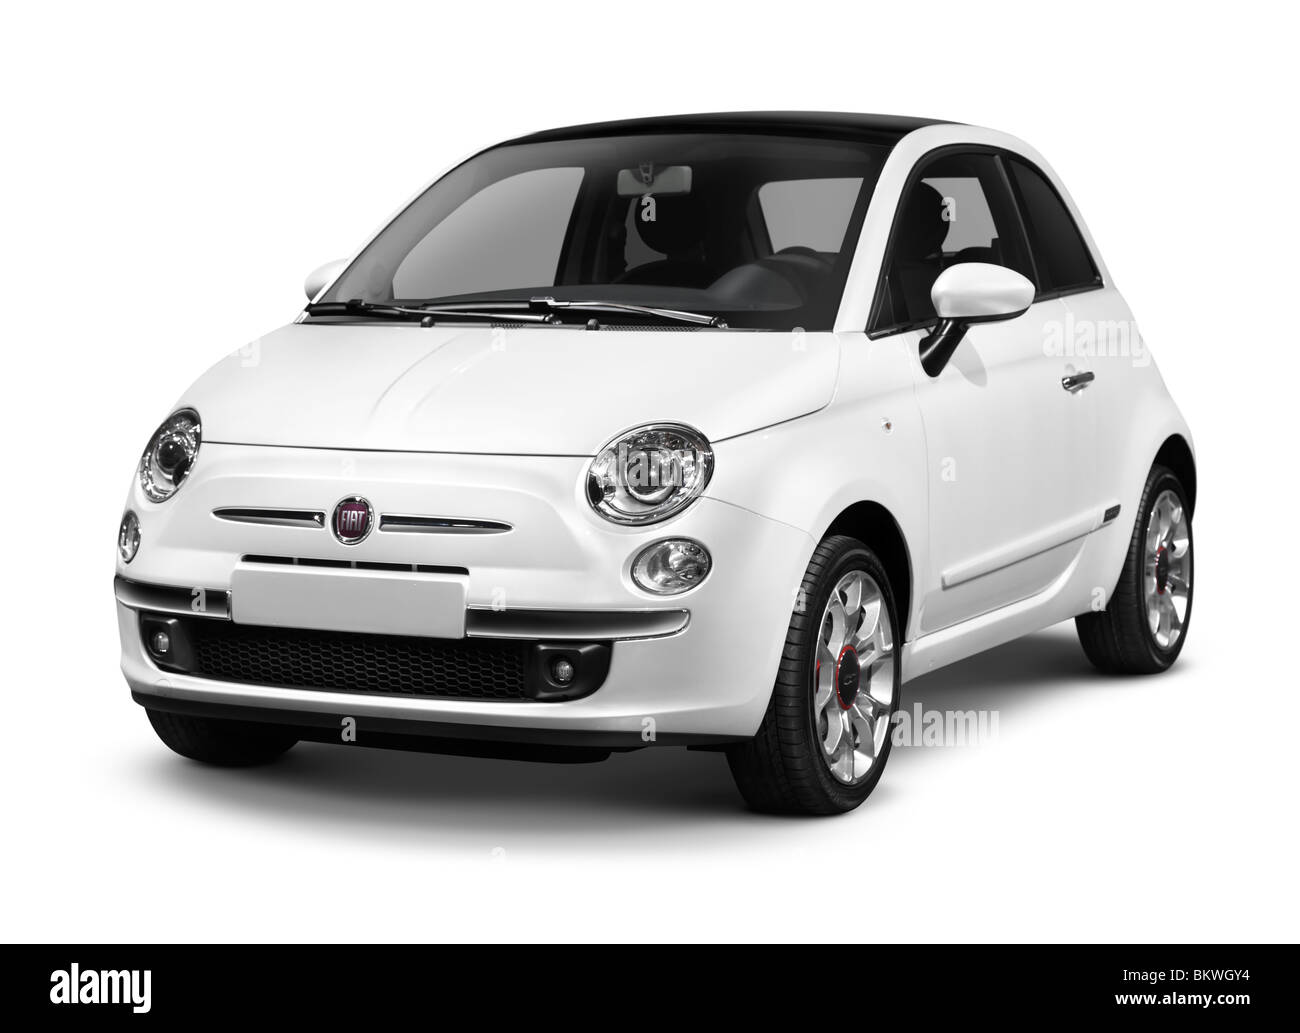 2010 Fiat Nuova 500 small city car isolated on white background with clipping path - Stock Image